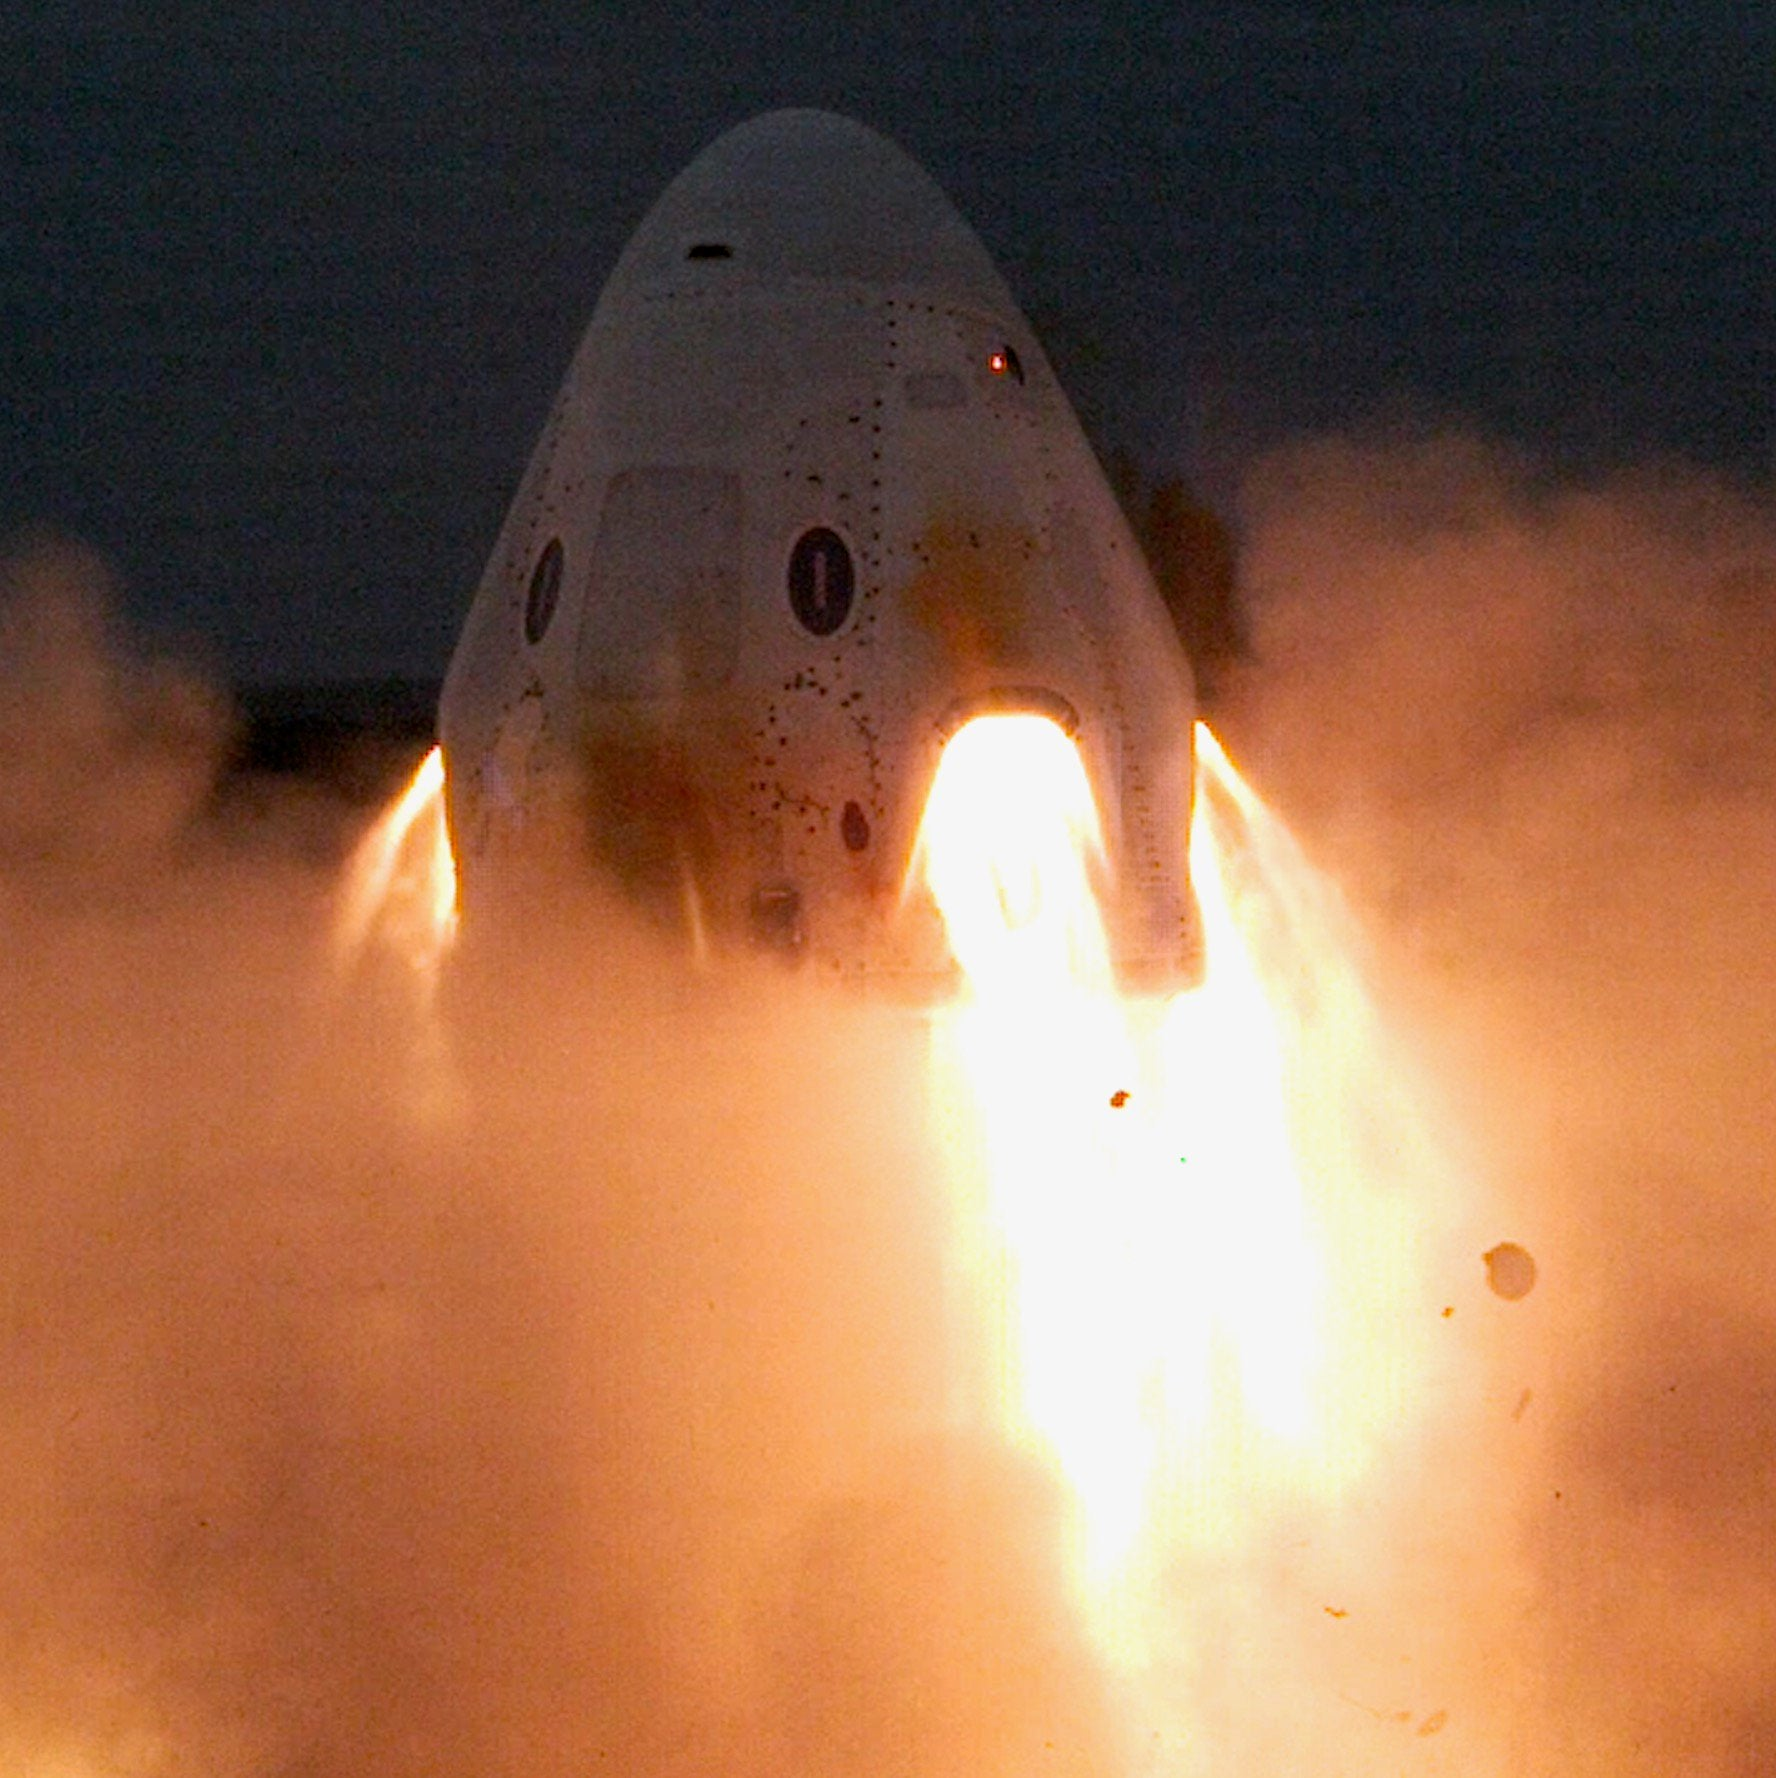 SpaceX Crew Dragon: SuperDraco engines successful test fire